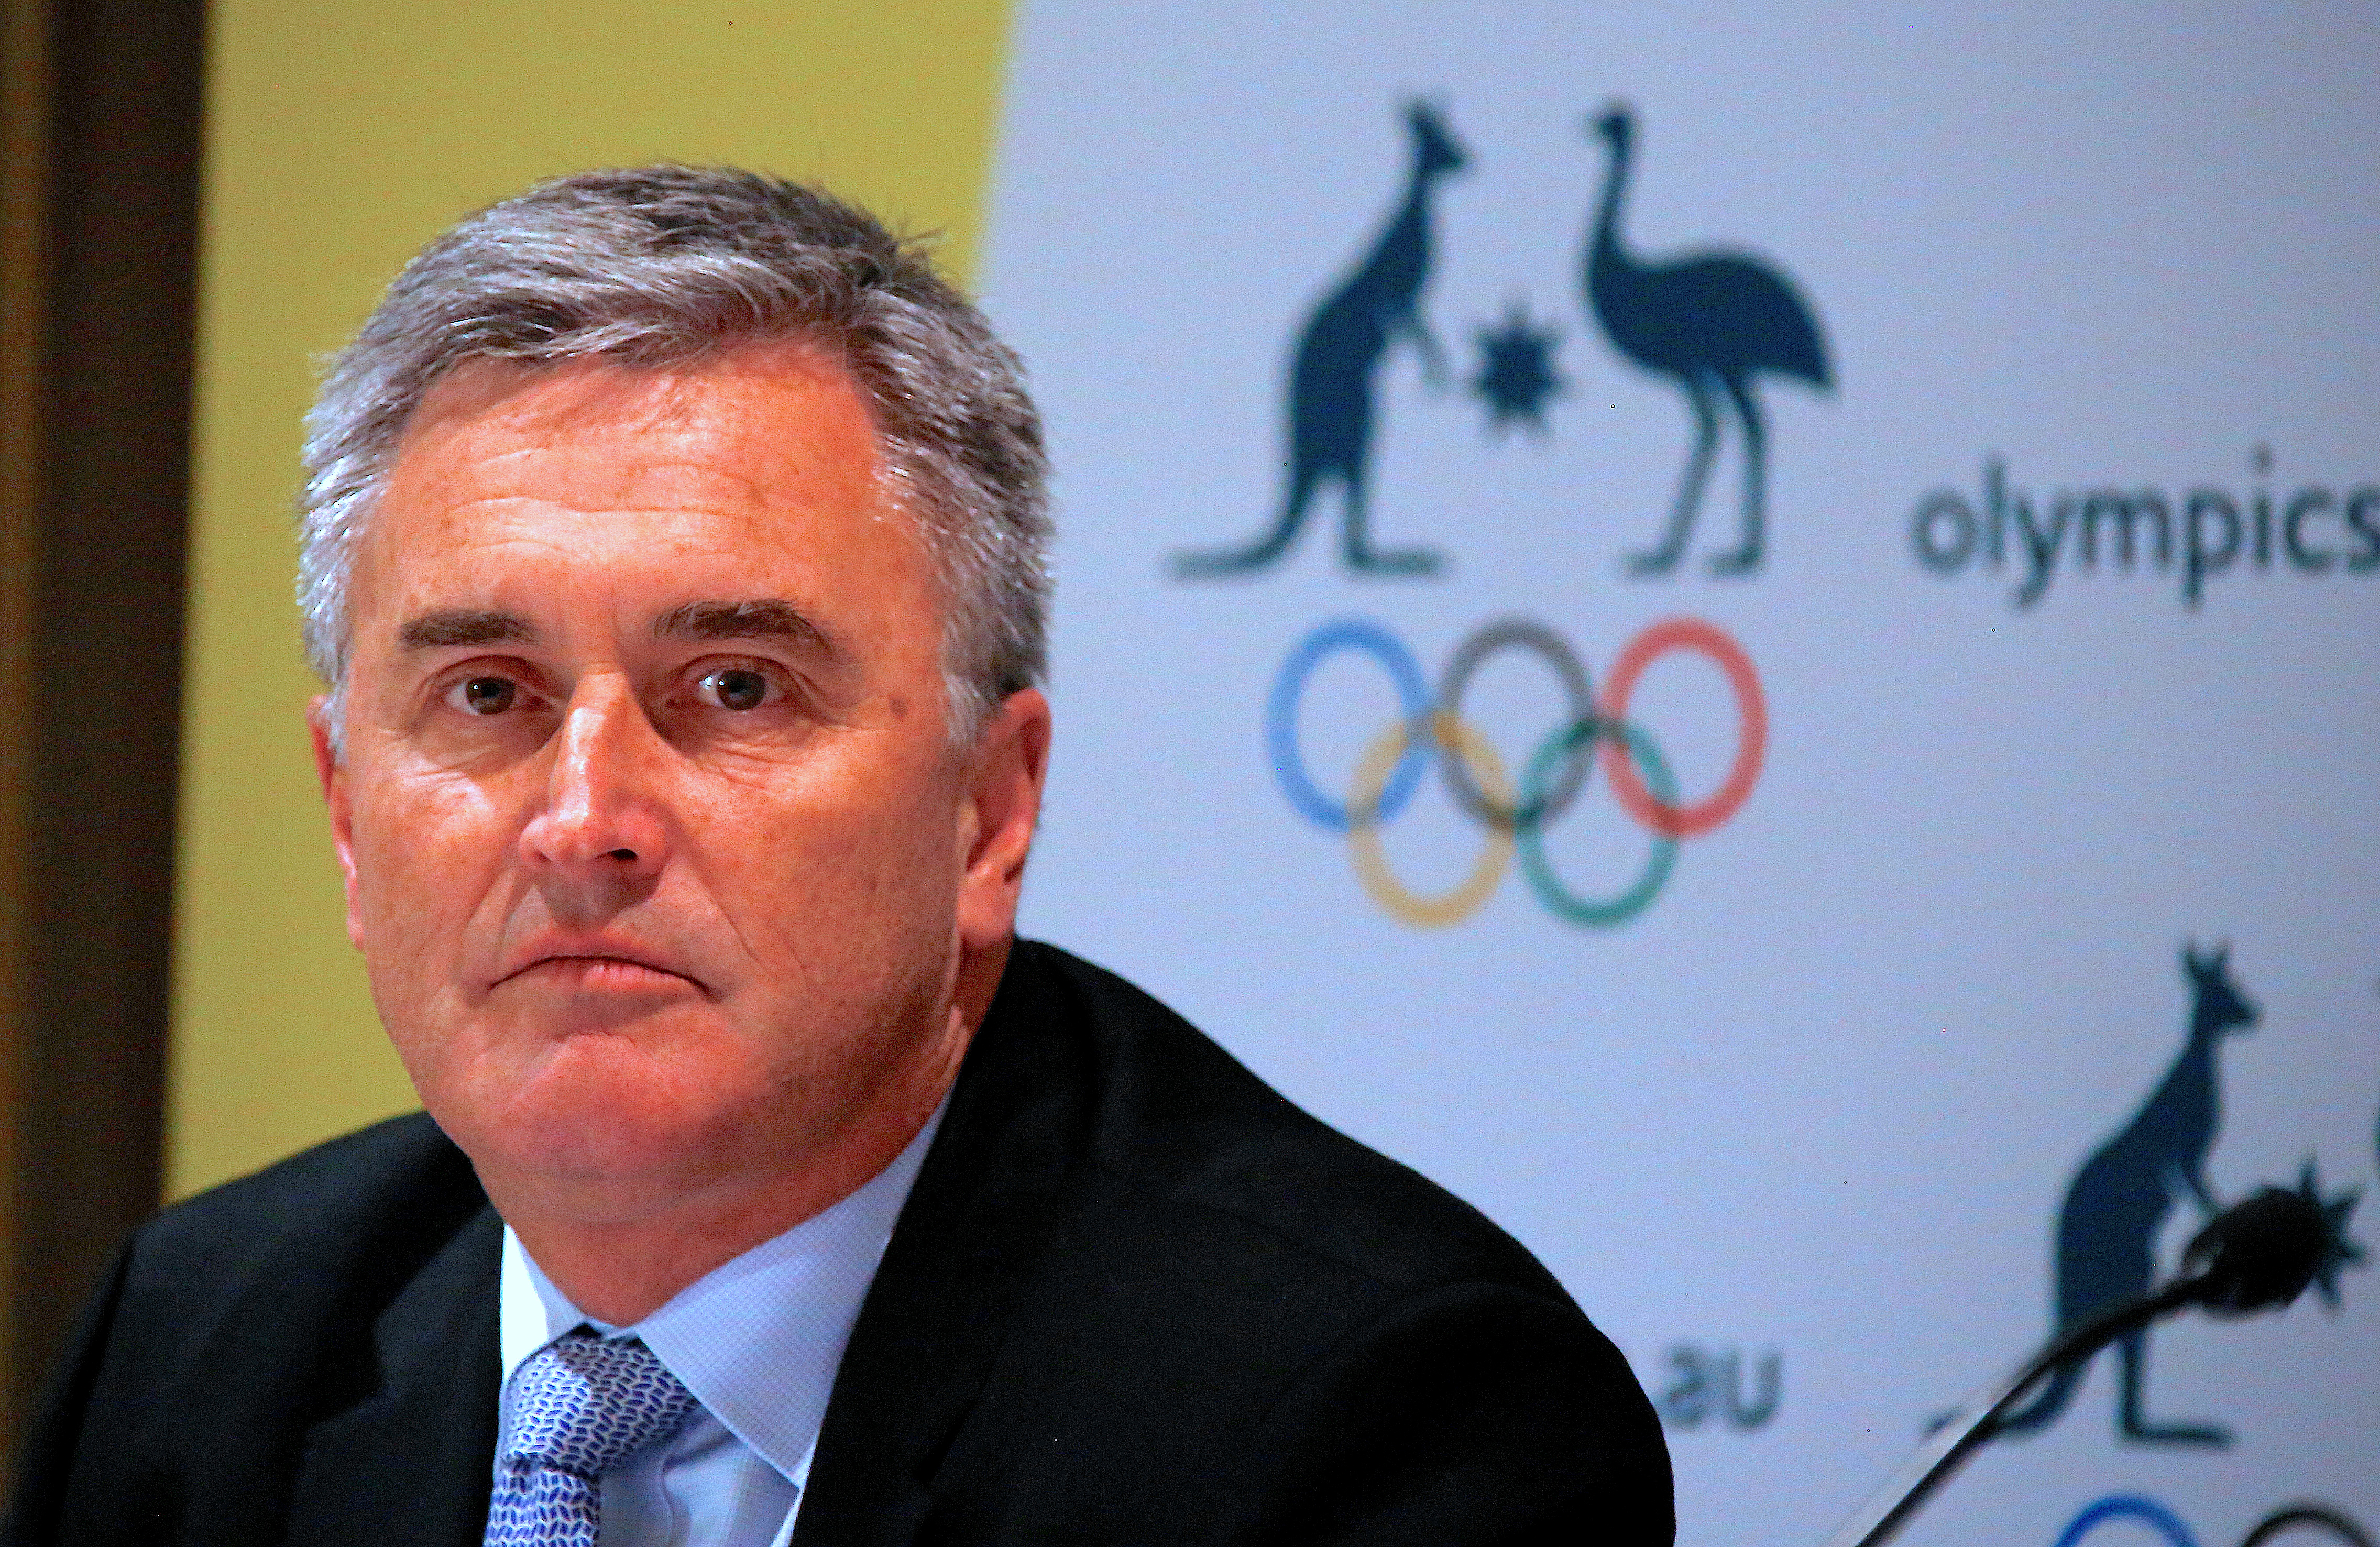 Ian Chesterman, Australia's chef de mission for the 2020 Tokyo Olympic Games, listens to a question during a media conference in Sydney, Australia, August 24, 2017.   REUTERS/David Gray